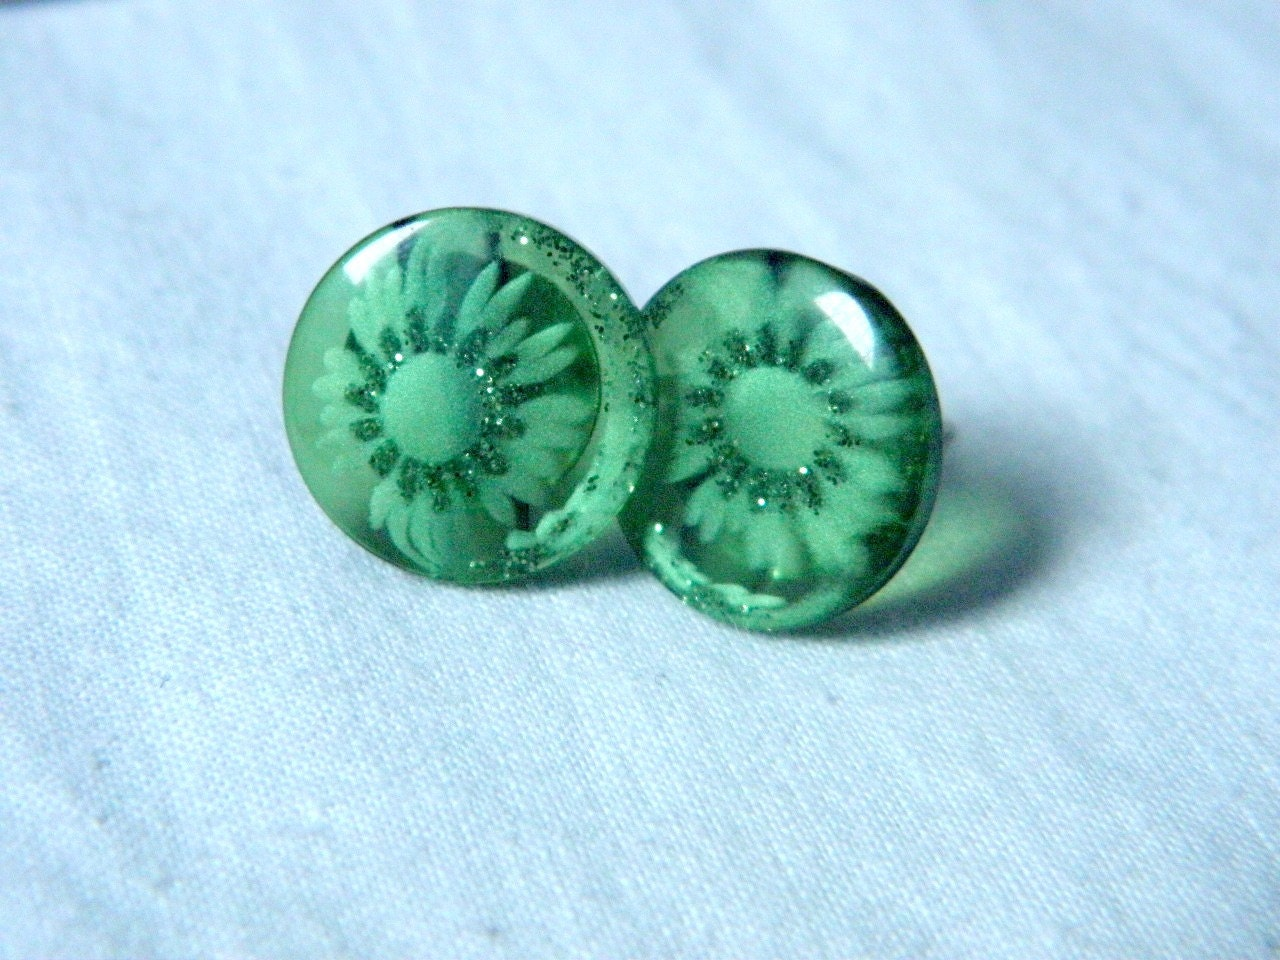 Platic button earrings green color